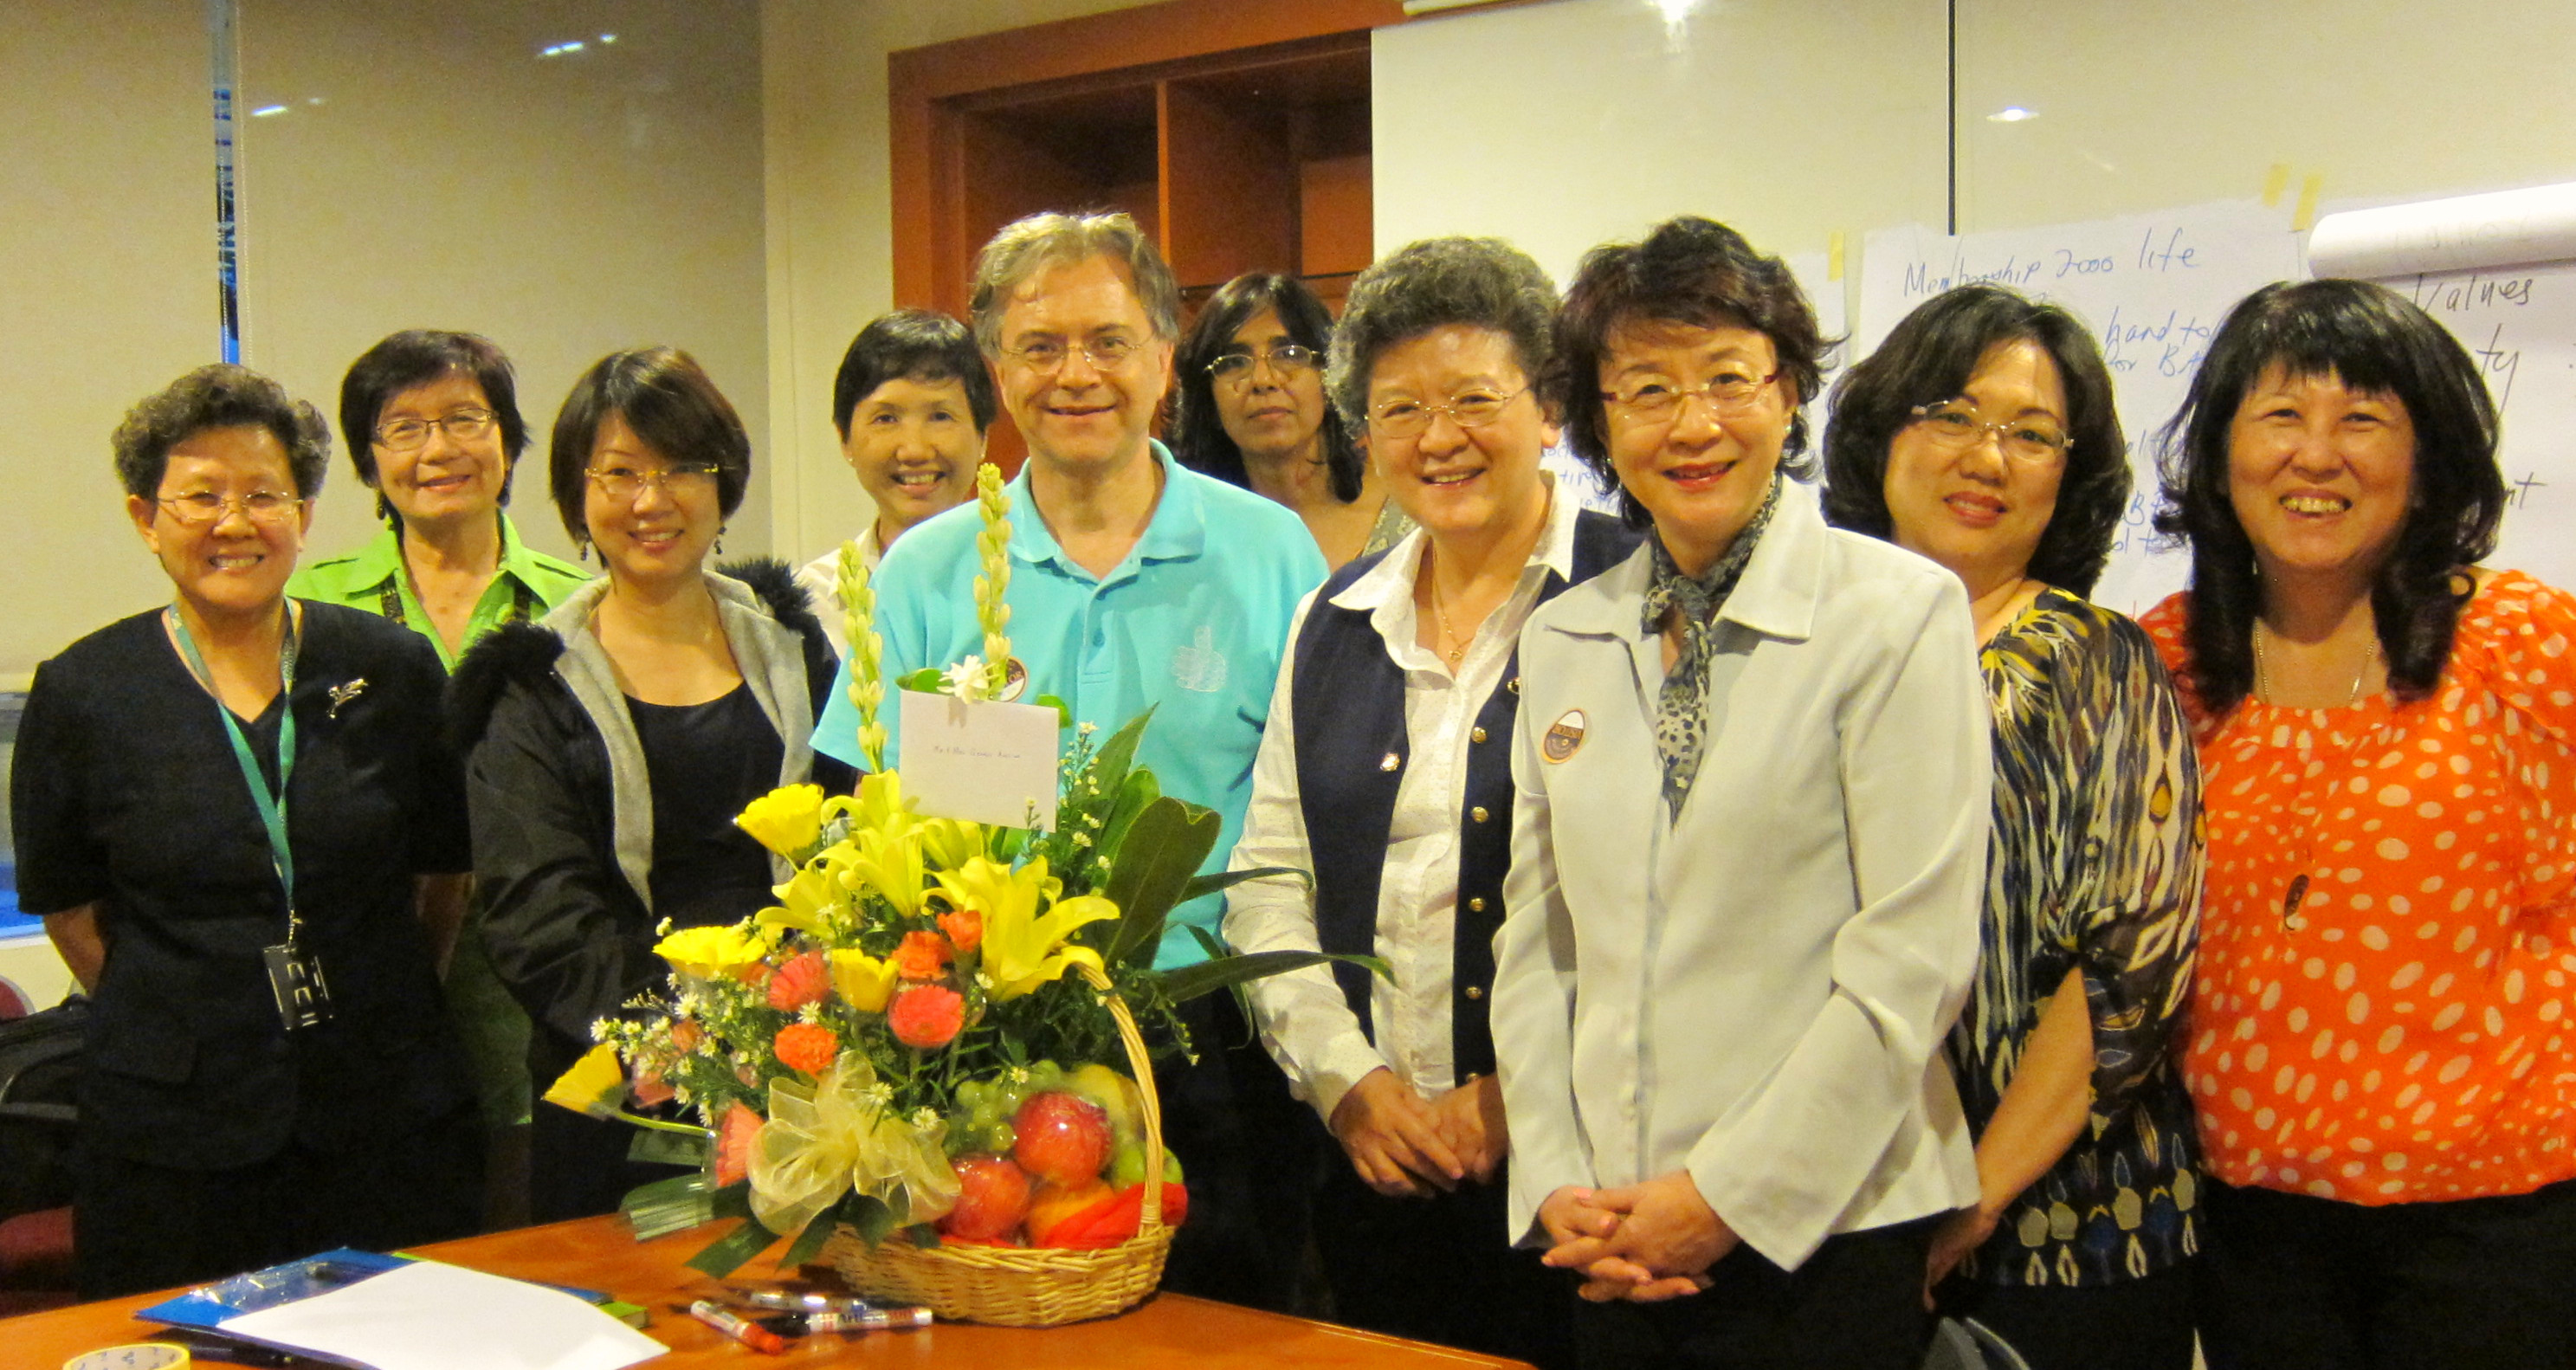 L-R, Front Row: Yap Sze Peng, Choo Li Shen, George Aveling, Moey Yoke Lai, Phang Sow Yoong, Fong Lai Leng and Jacyln Chin. L-R, Back Row:  Khoo Suat Pheng, Jennifer Cheong and Uma Rajasingam,